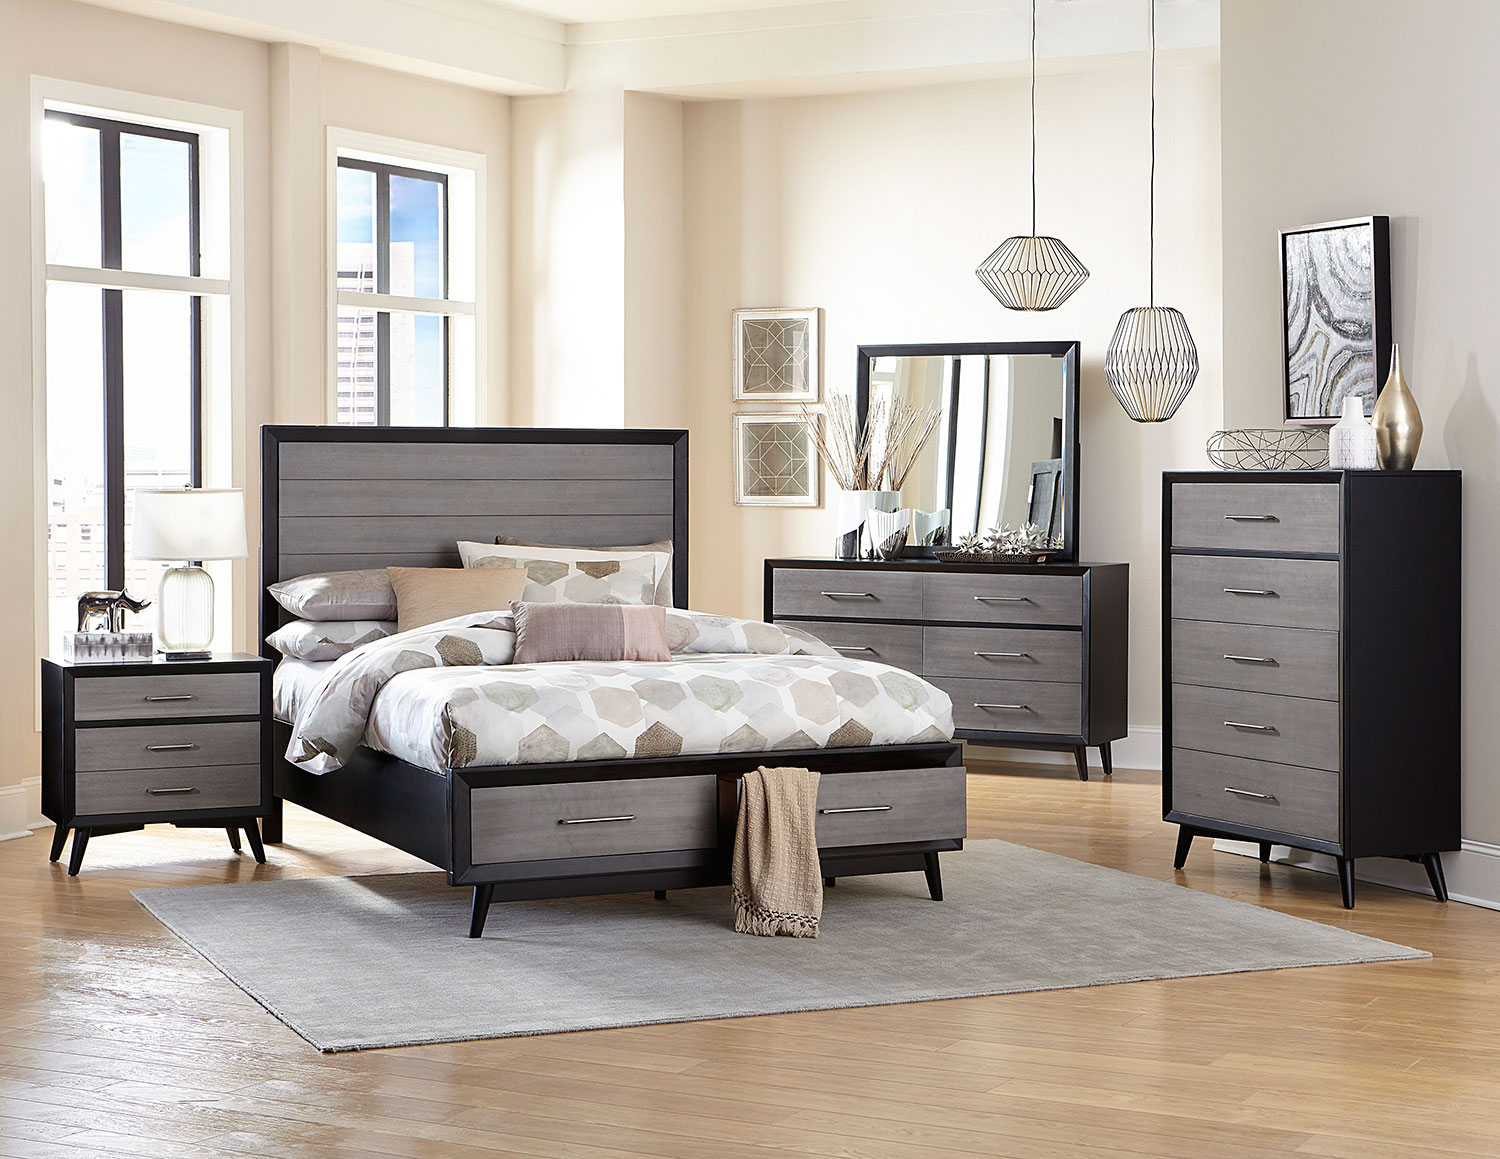 homelegance raku bedroom set - barnwood grey 1711-bedroom-set at